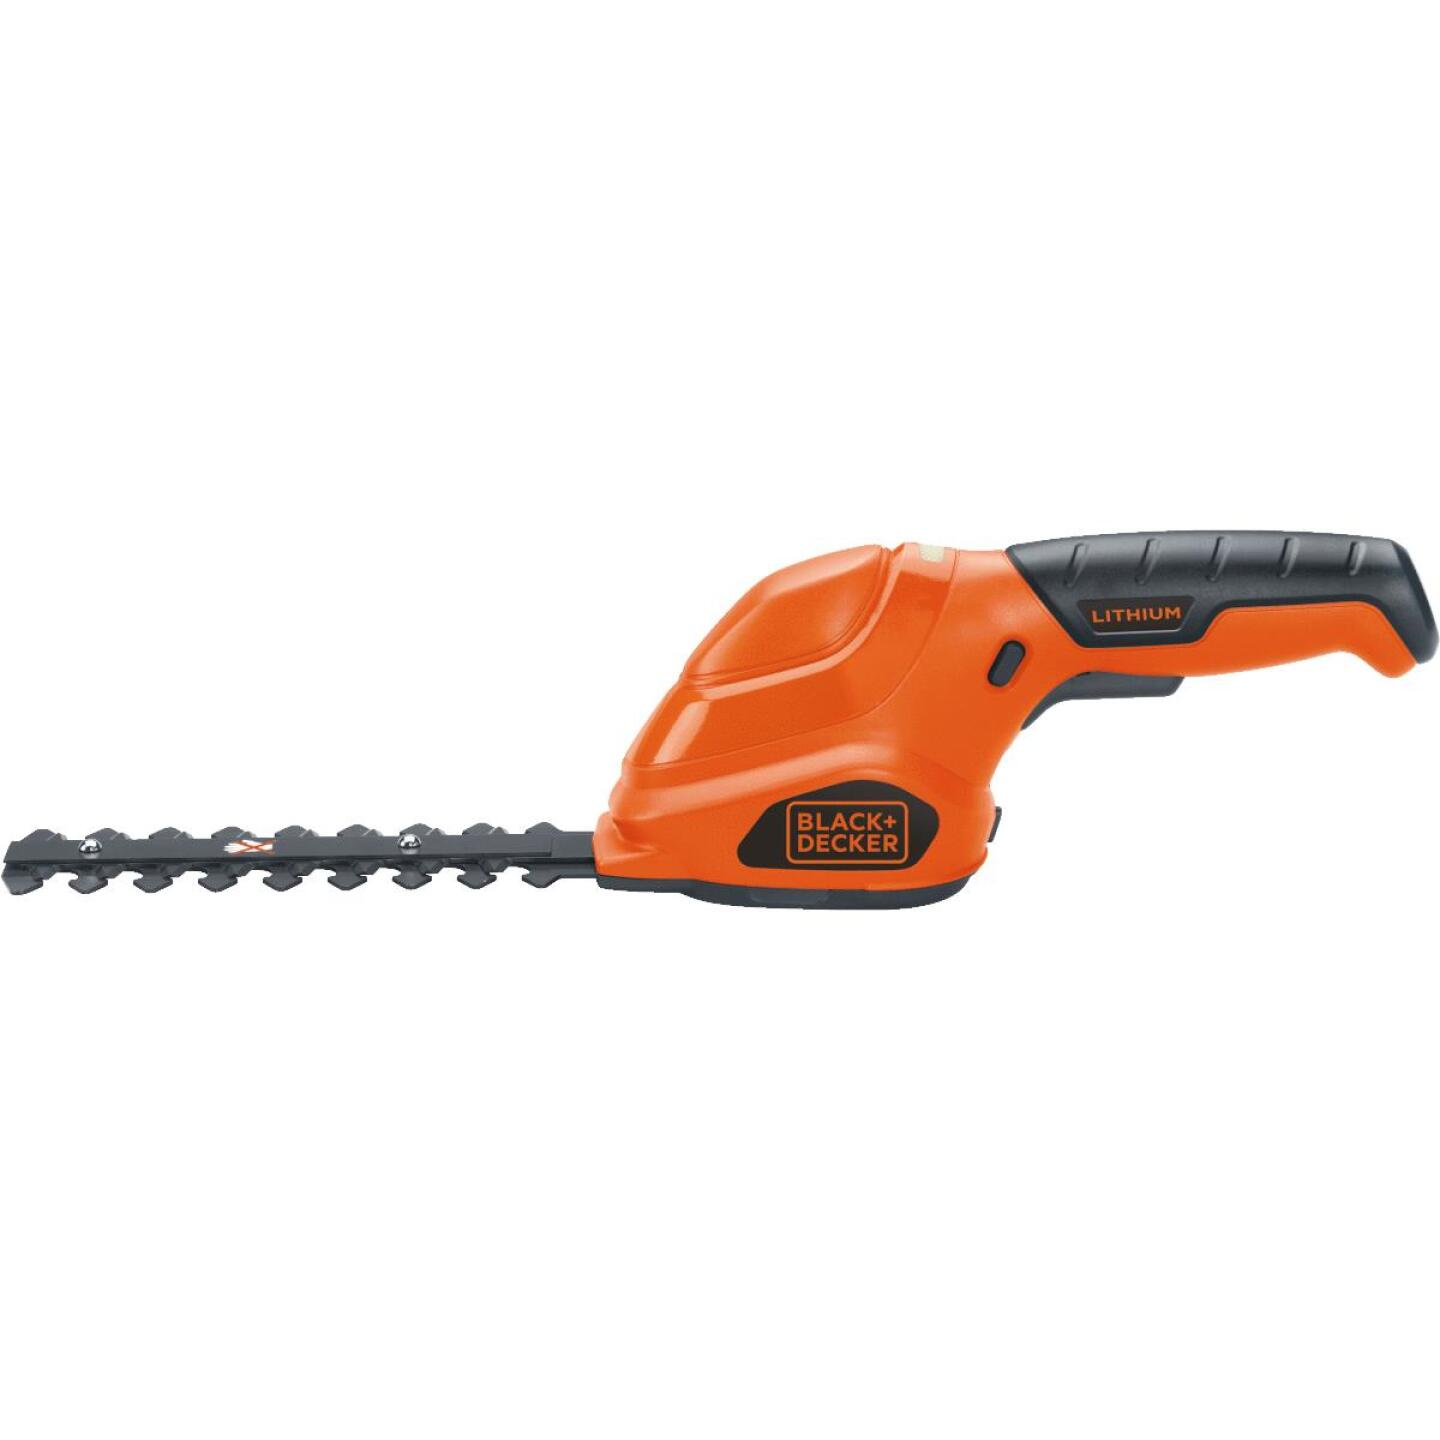 Black & Decker 6 In. 3.6V Lithiom Ion Cordless Grass Shear & Shrubber Image 3